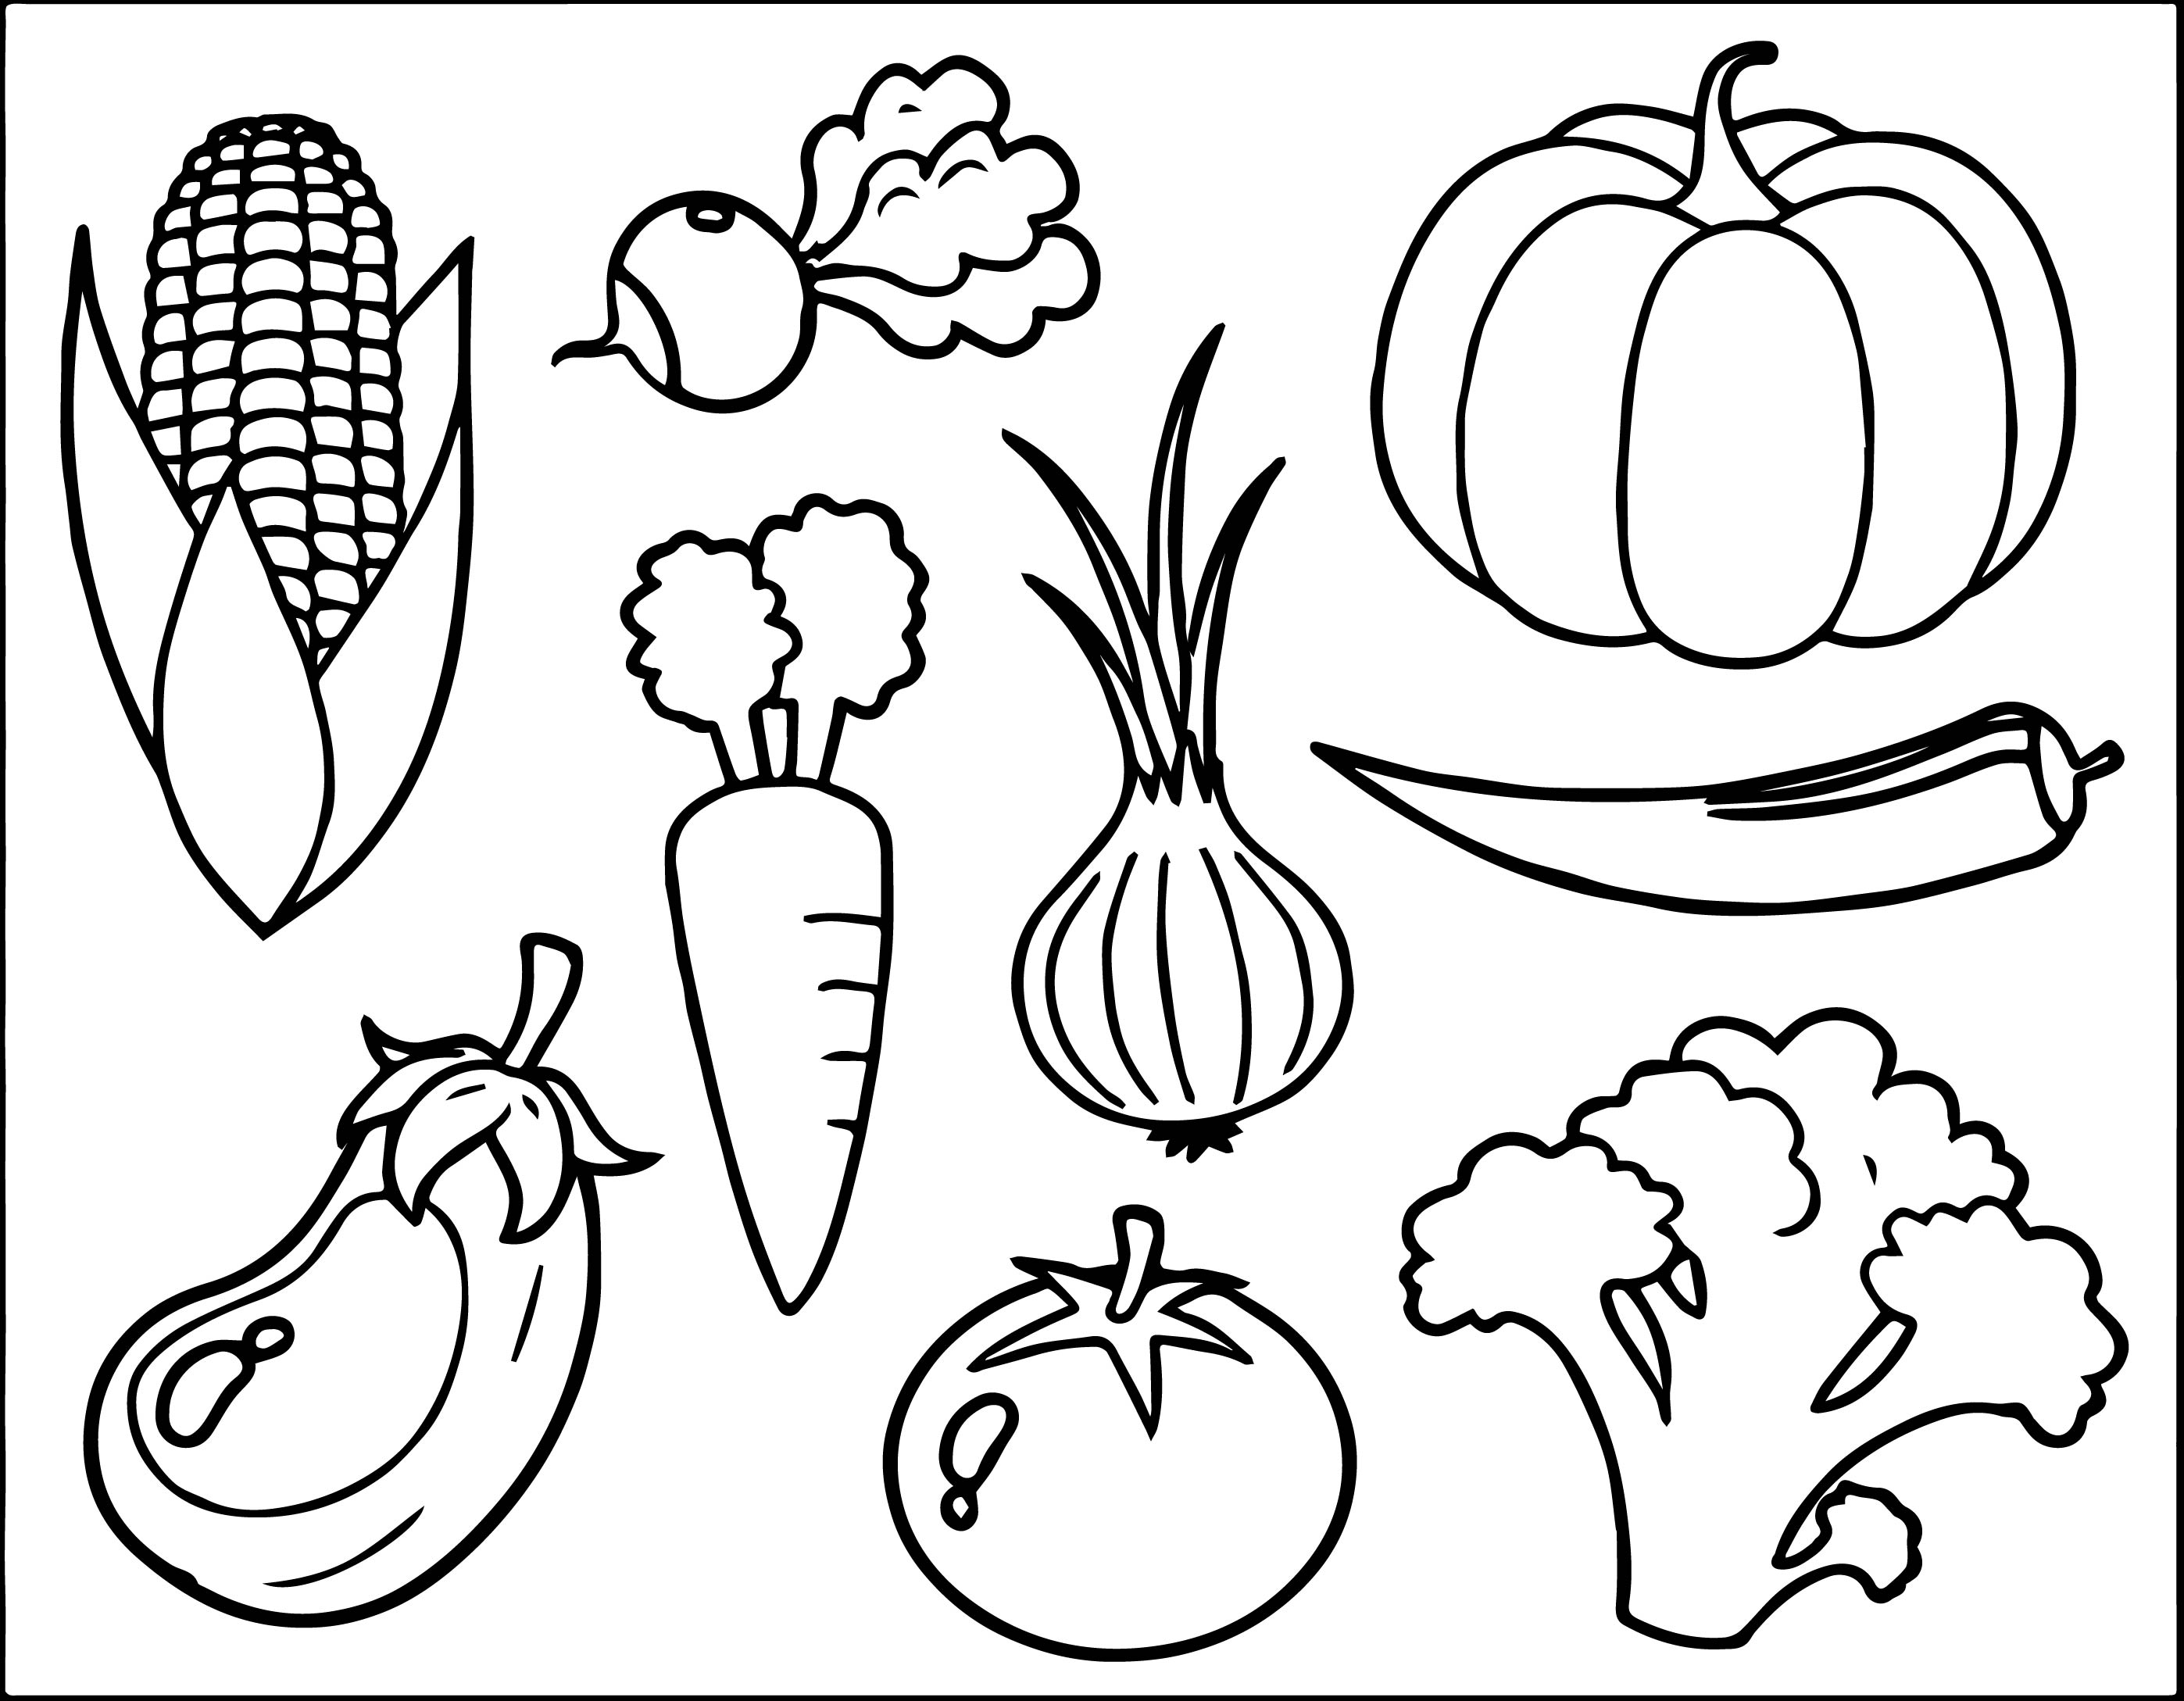 vegetables pictures for colouring vegetable coloring pages best coloring pages for kids colouring pictures for vegetables